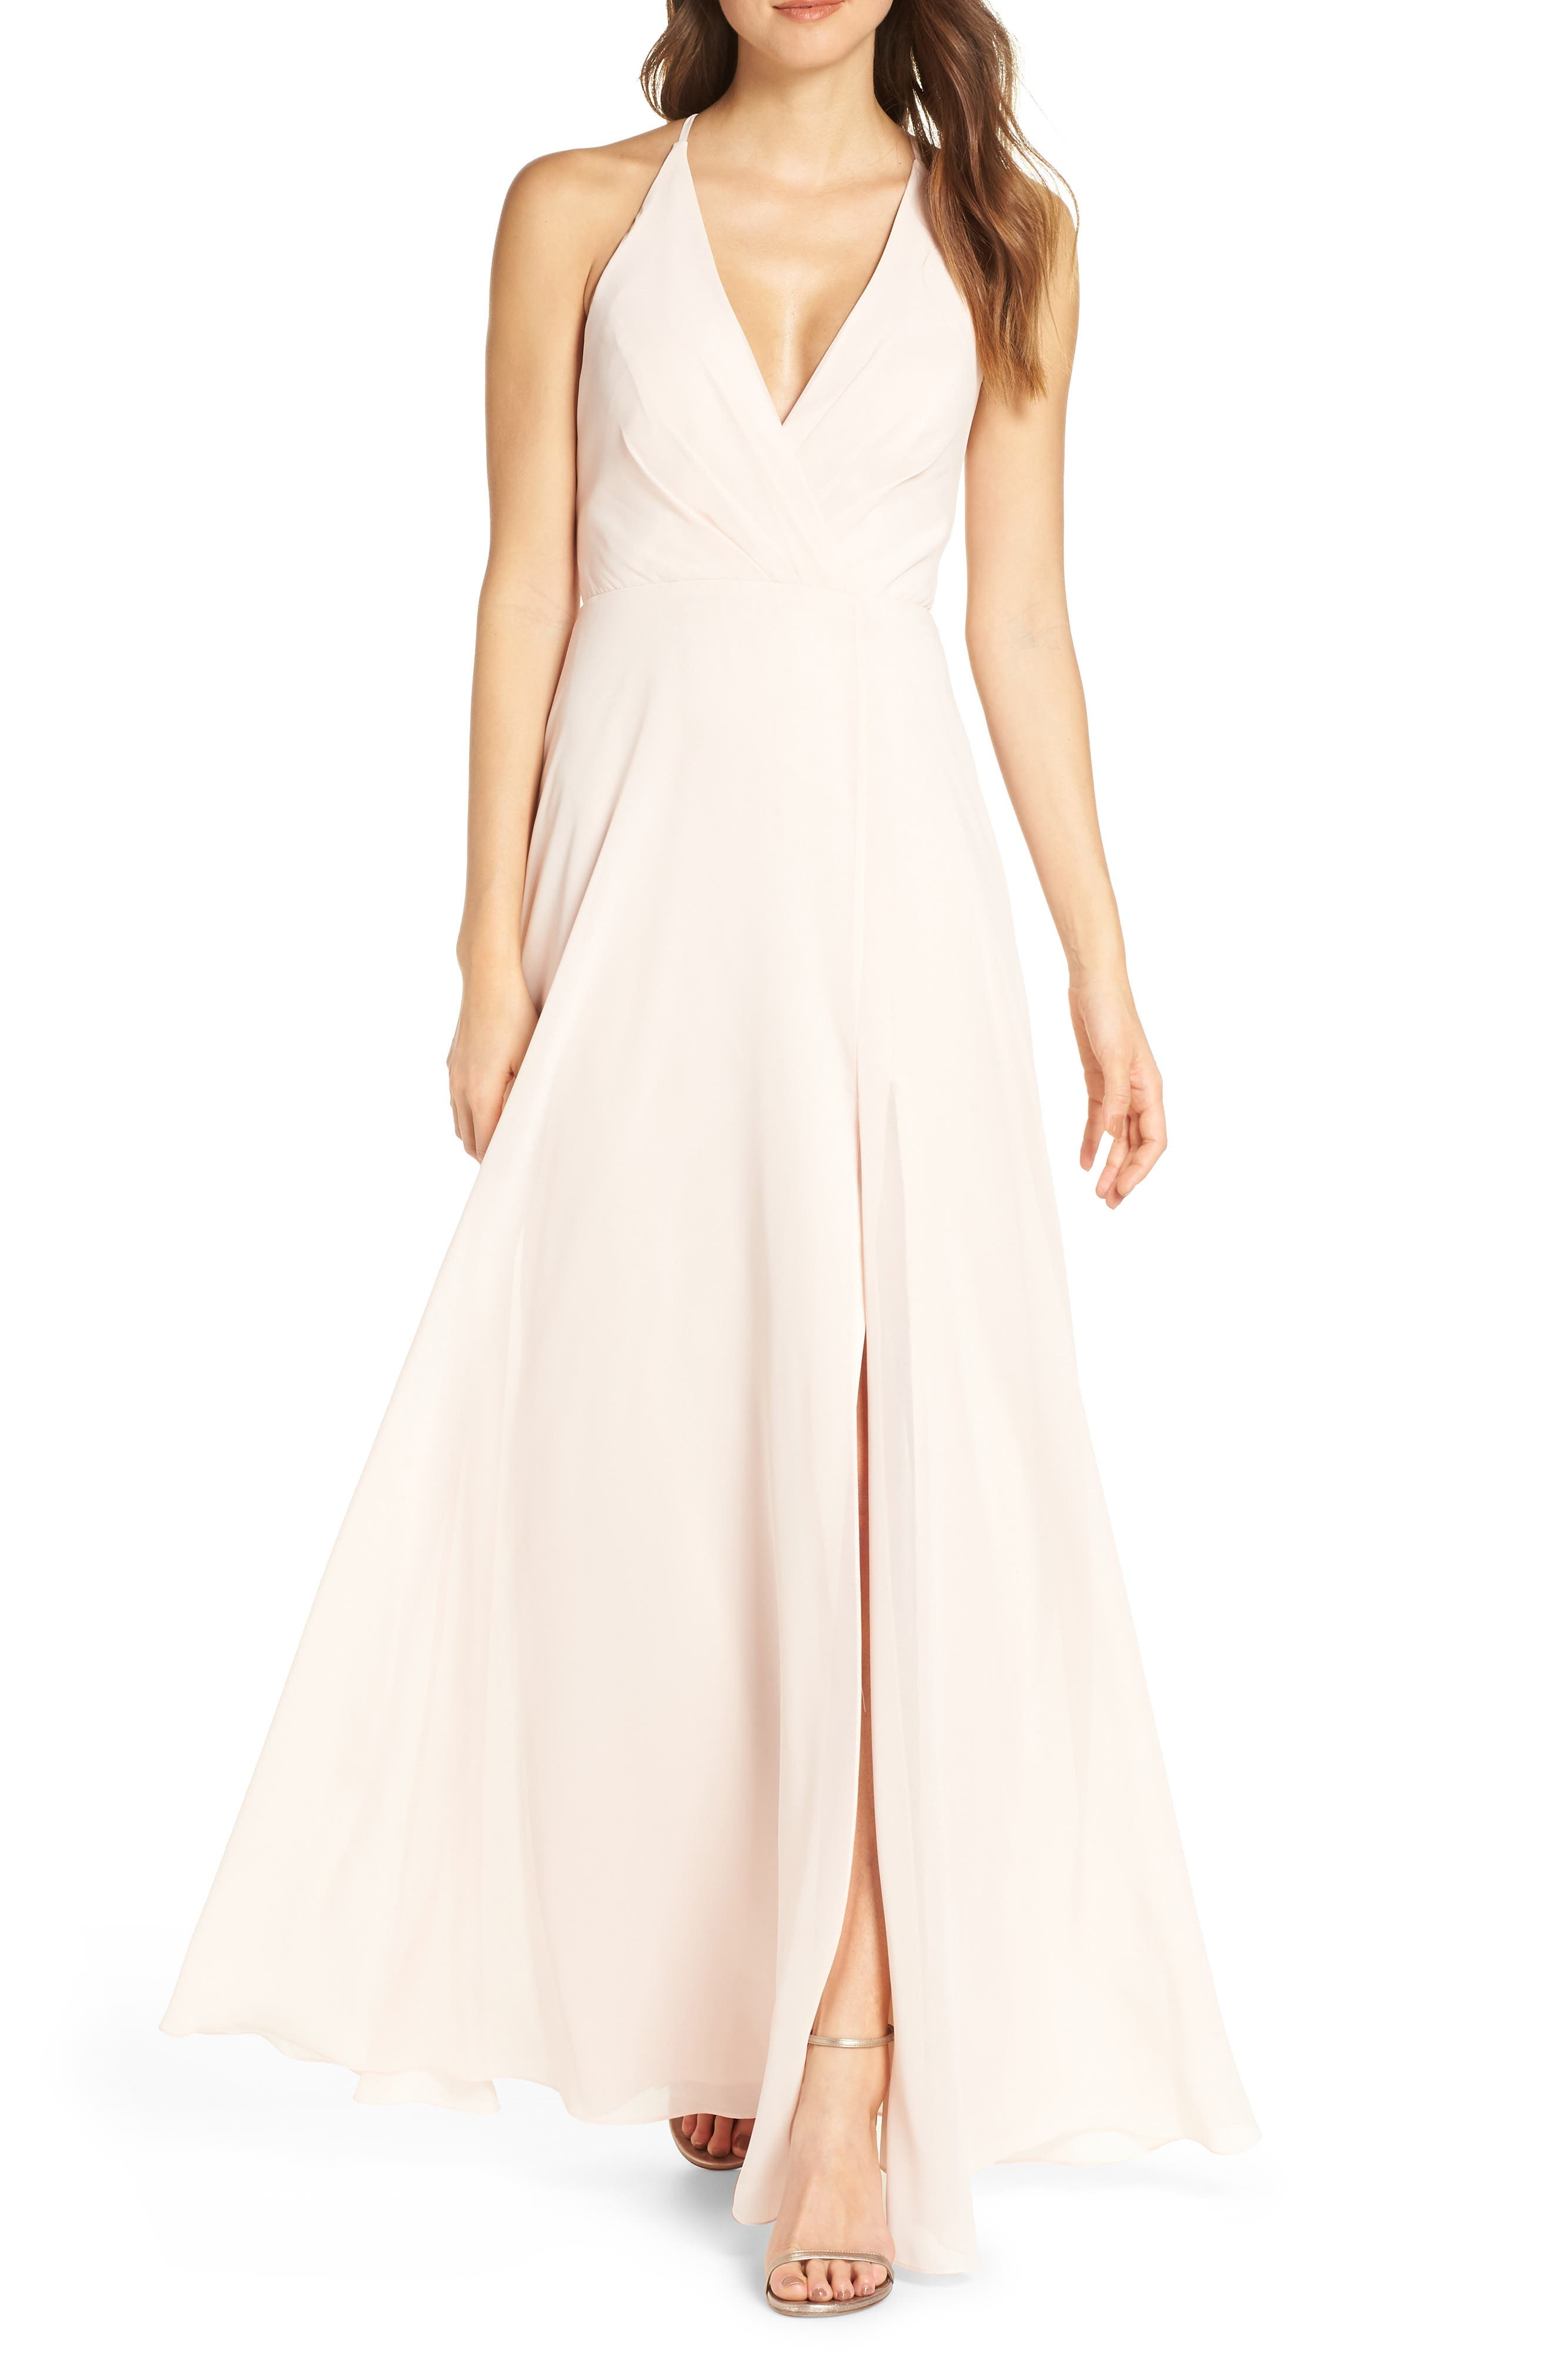 Jenny Yoo Bryce Surplice V-Neck Chiffon Evening Dress, Pink